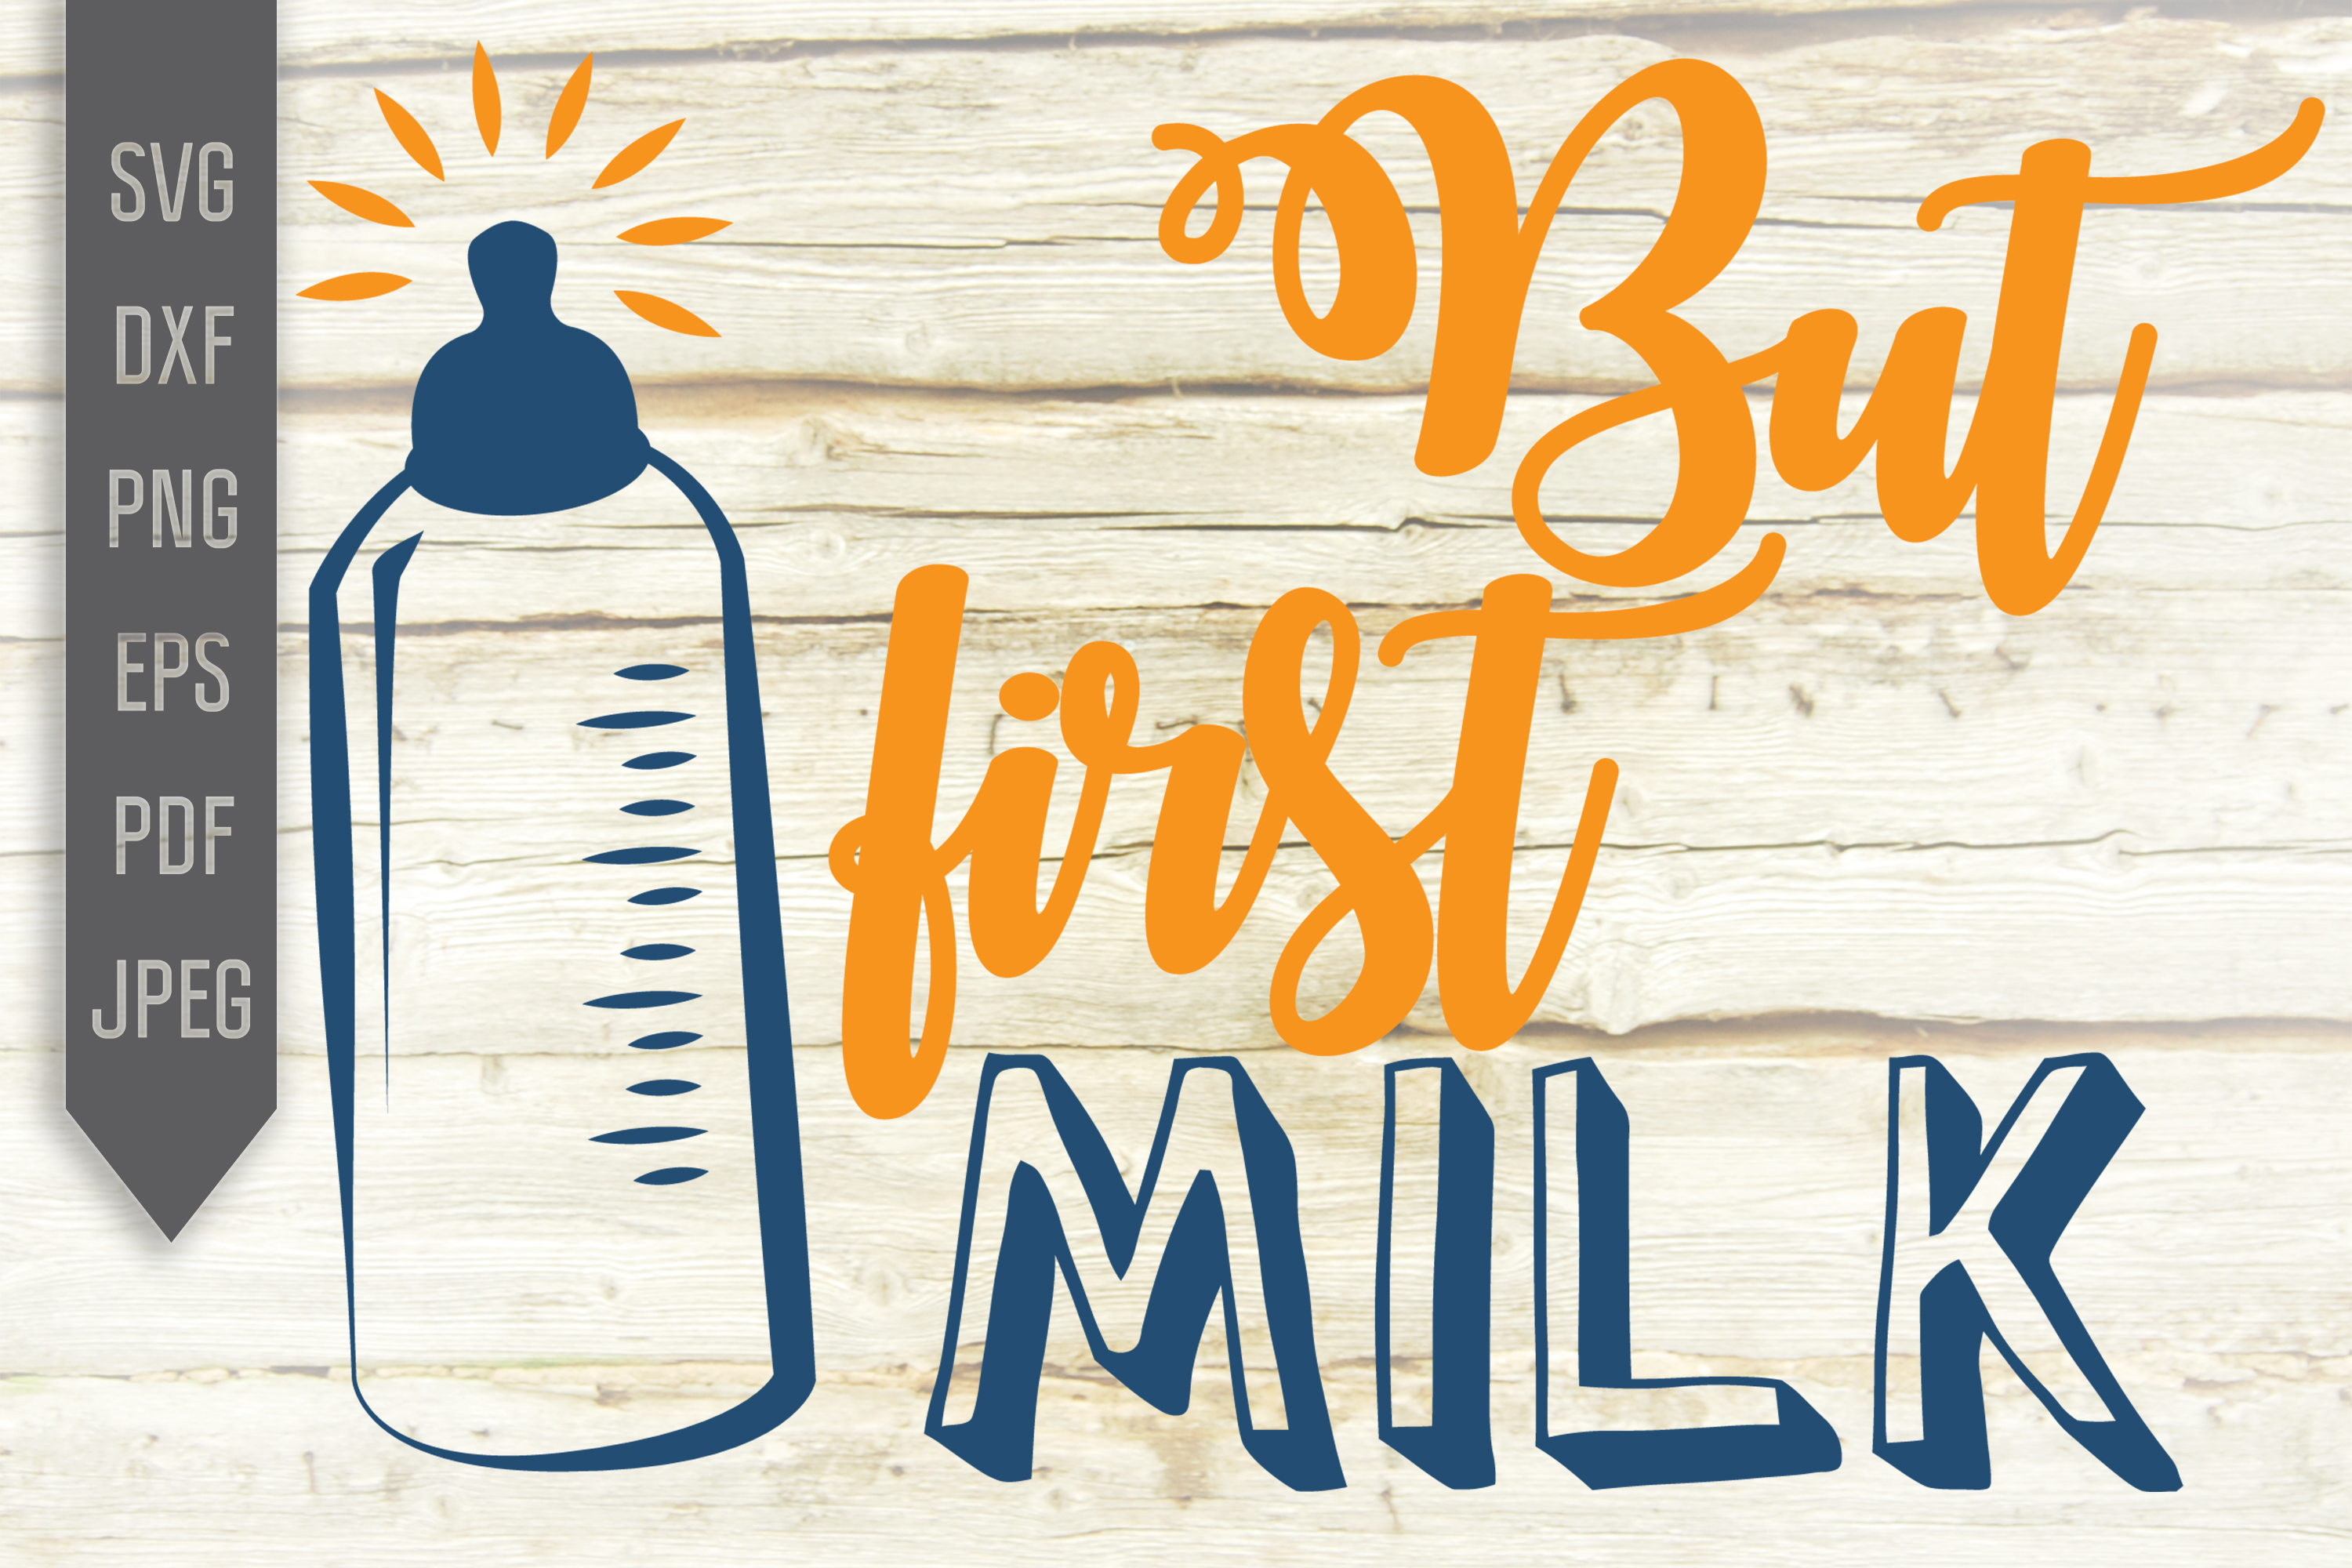 Download Free But First Milk Svg Baby Bottle Design Graphic By Svglaboratory for Cricut Explore, Silhouette and other cutting machines.